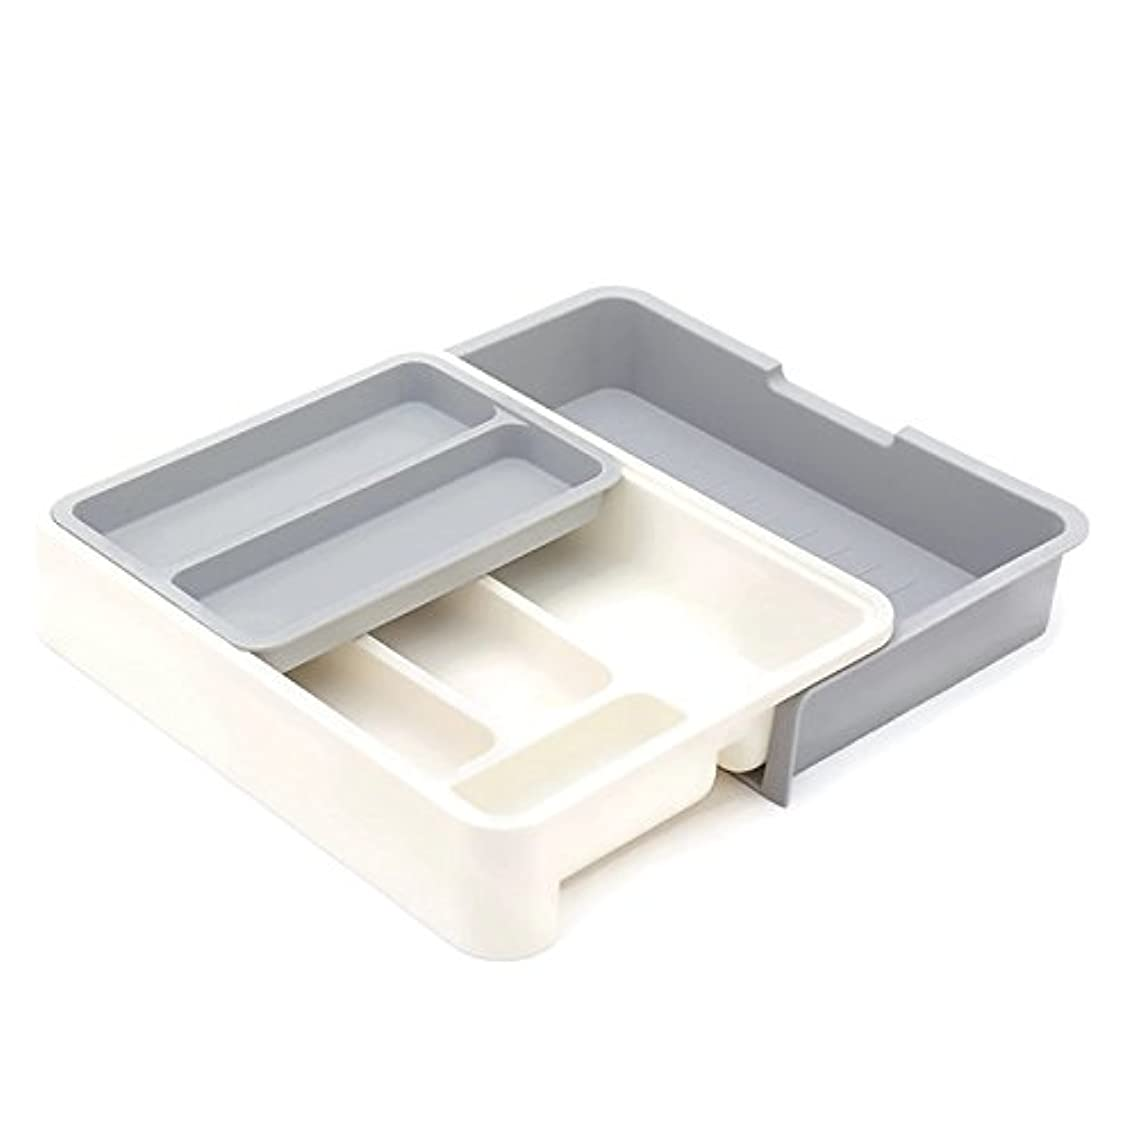 HornTide 3-in-1 Drawer Tray Expandable Utensil Storage Organizer Plastic Tableware Holder for Cutlery Receive and More - Gray